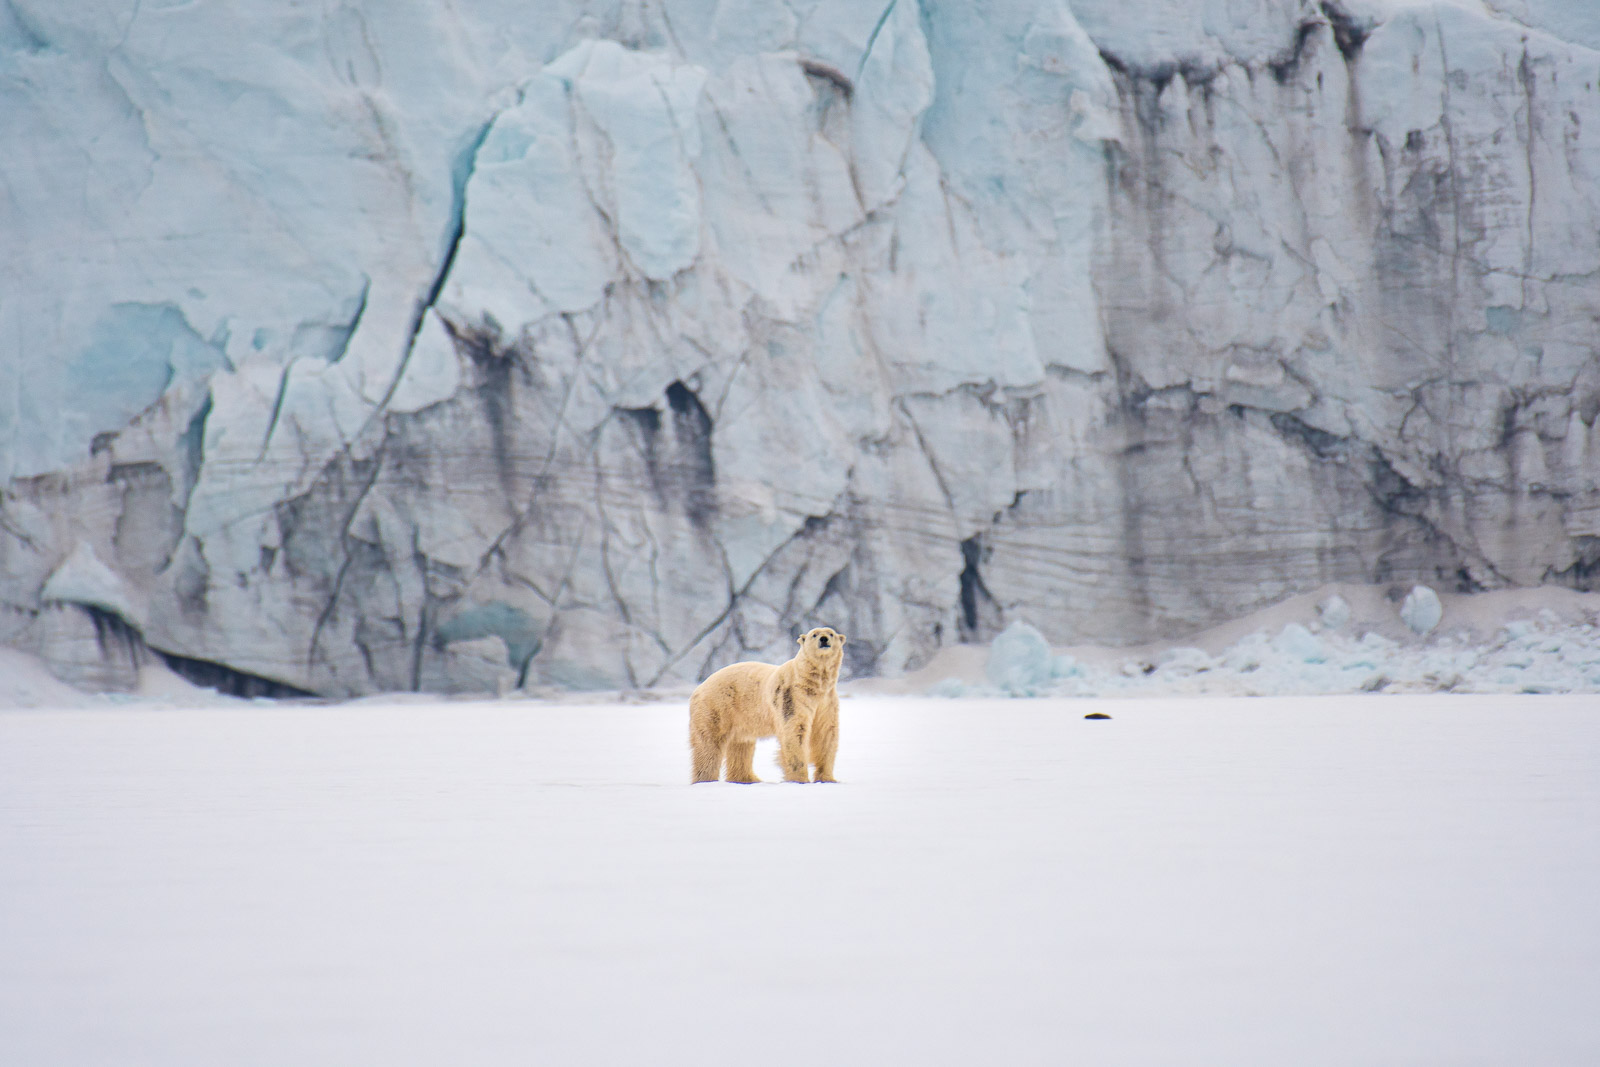 photo-workshop-svalbard-photo-expedition-2.jpg